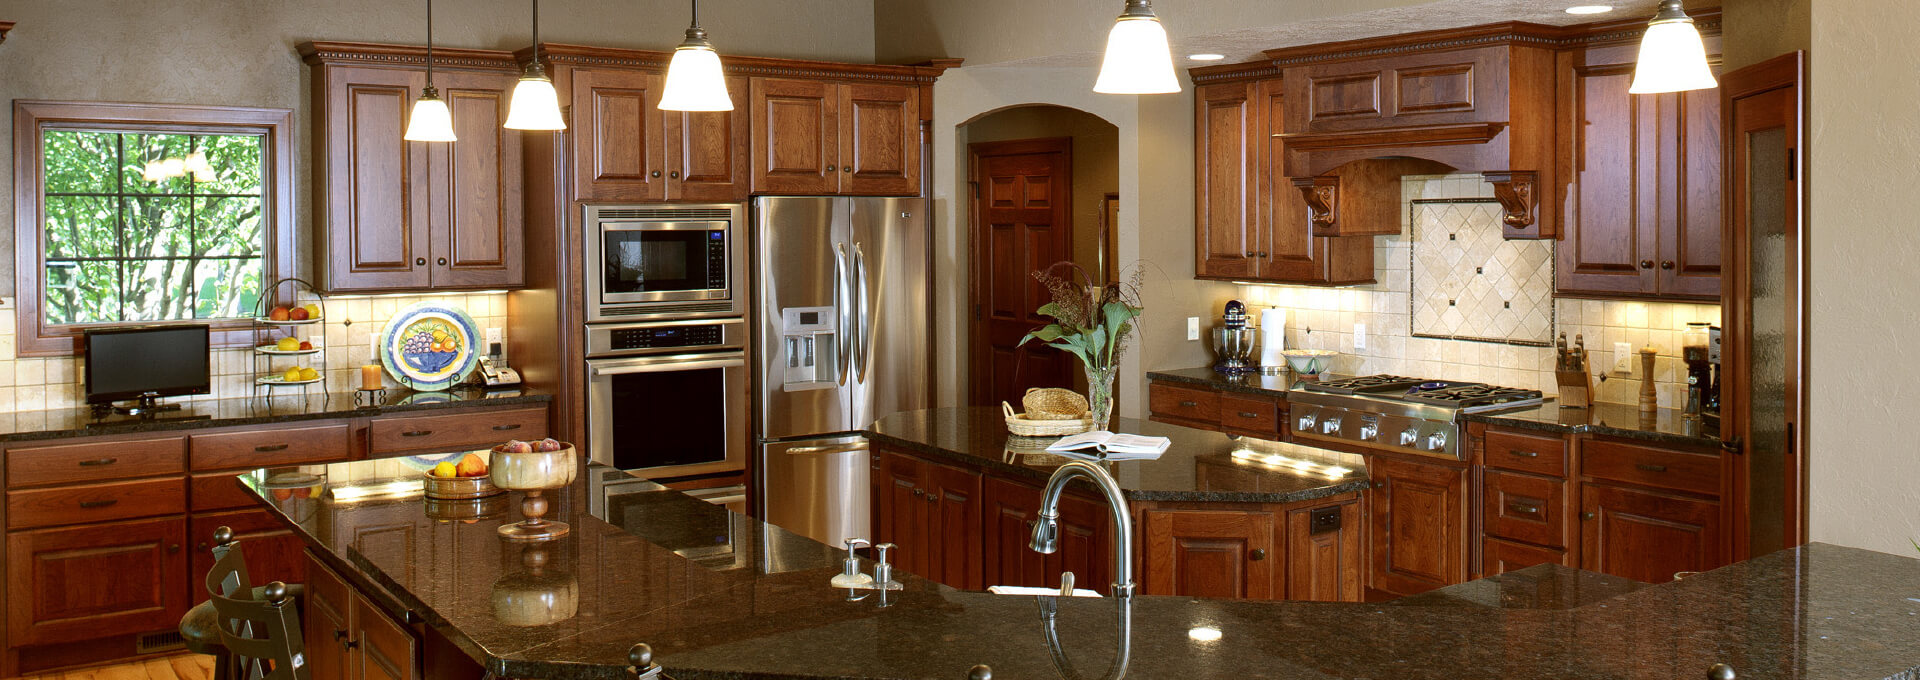 Kitchen Express | Cabinets, Countertops & Showroom in ...